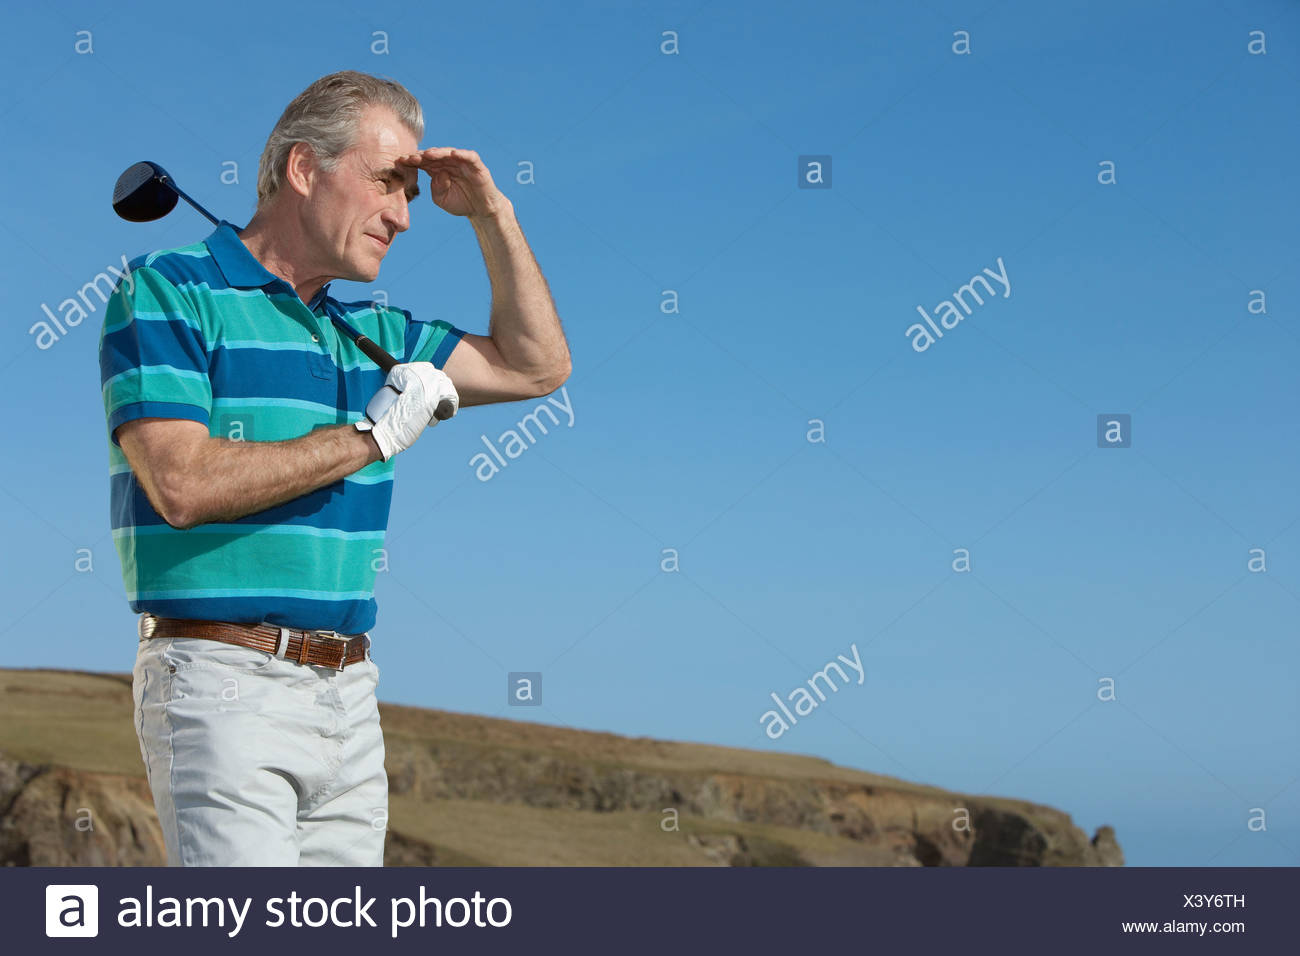 man golfing trying to see where his drive went - Stock Image